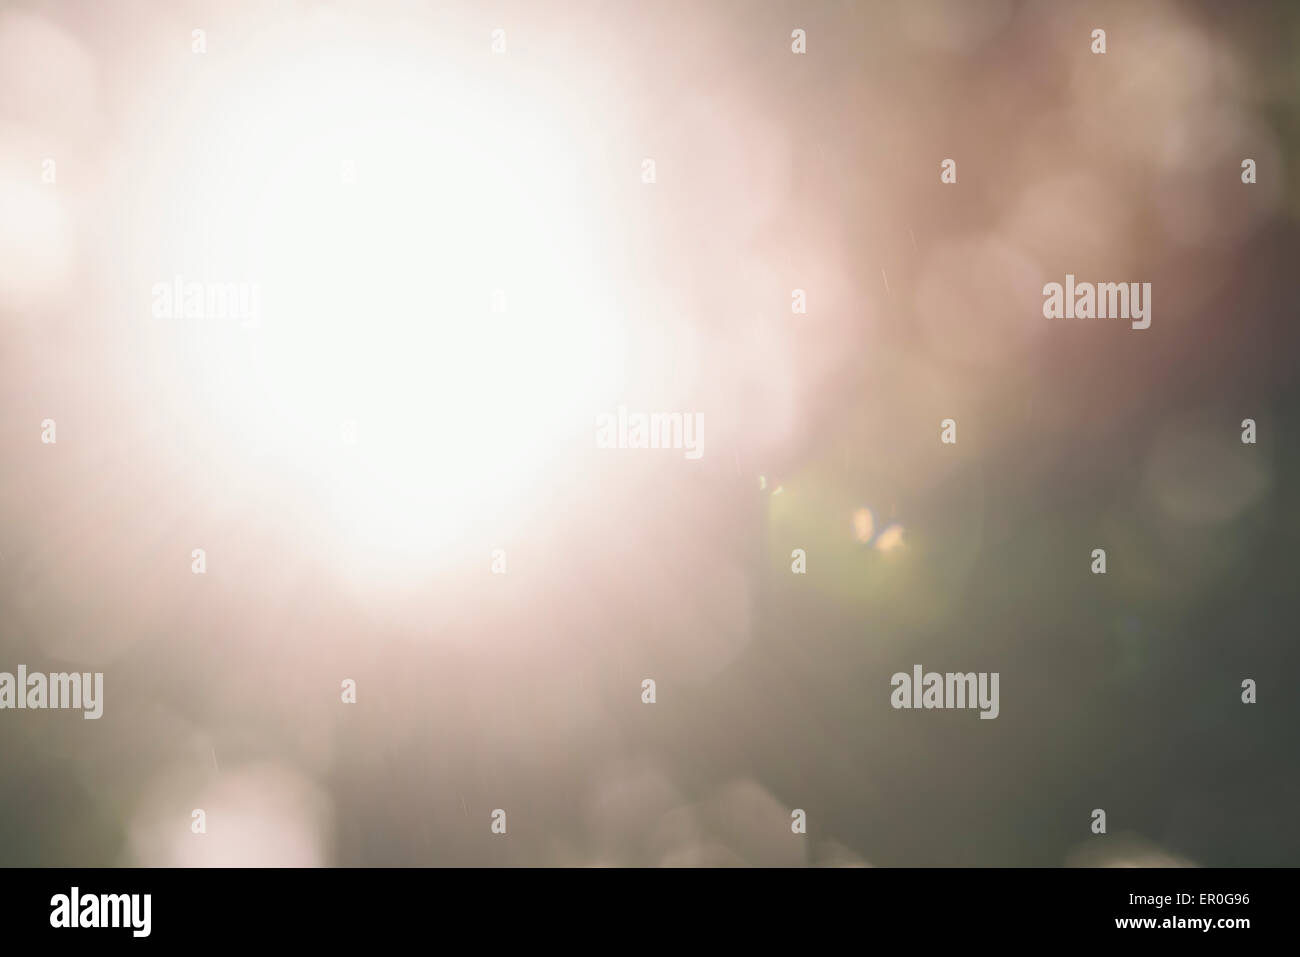 a blurred background inspired to nature with lens flare - Stock Image